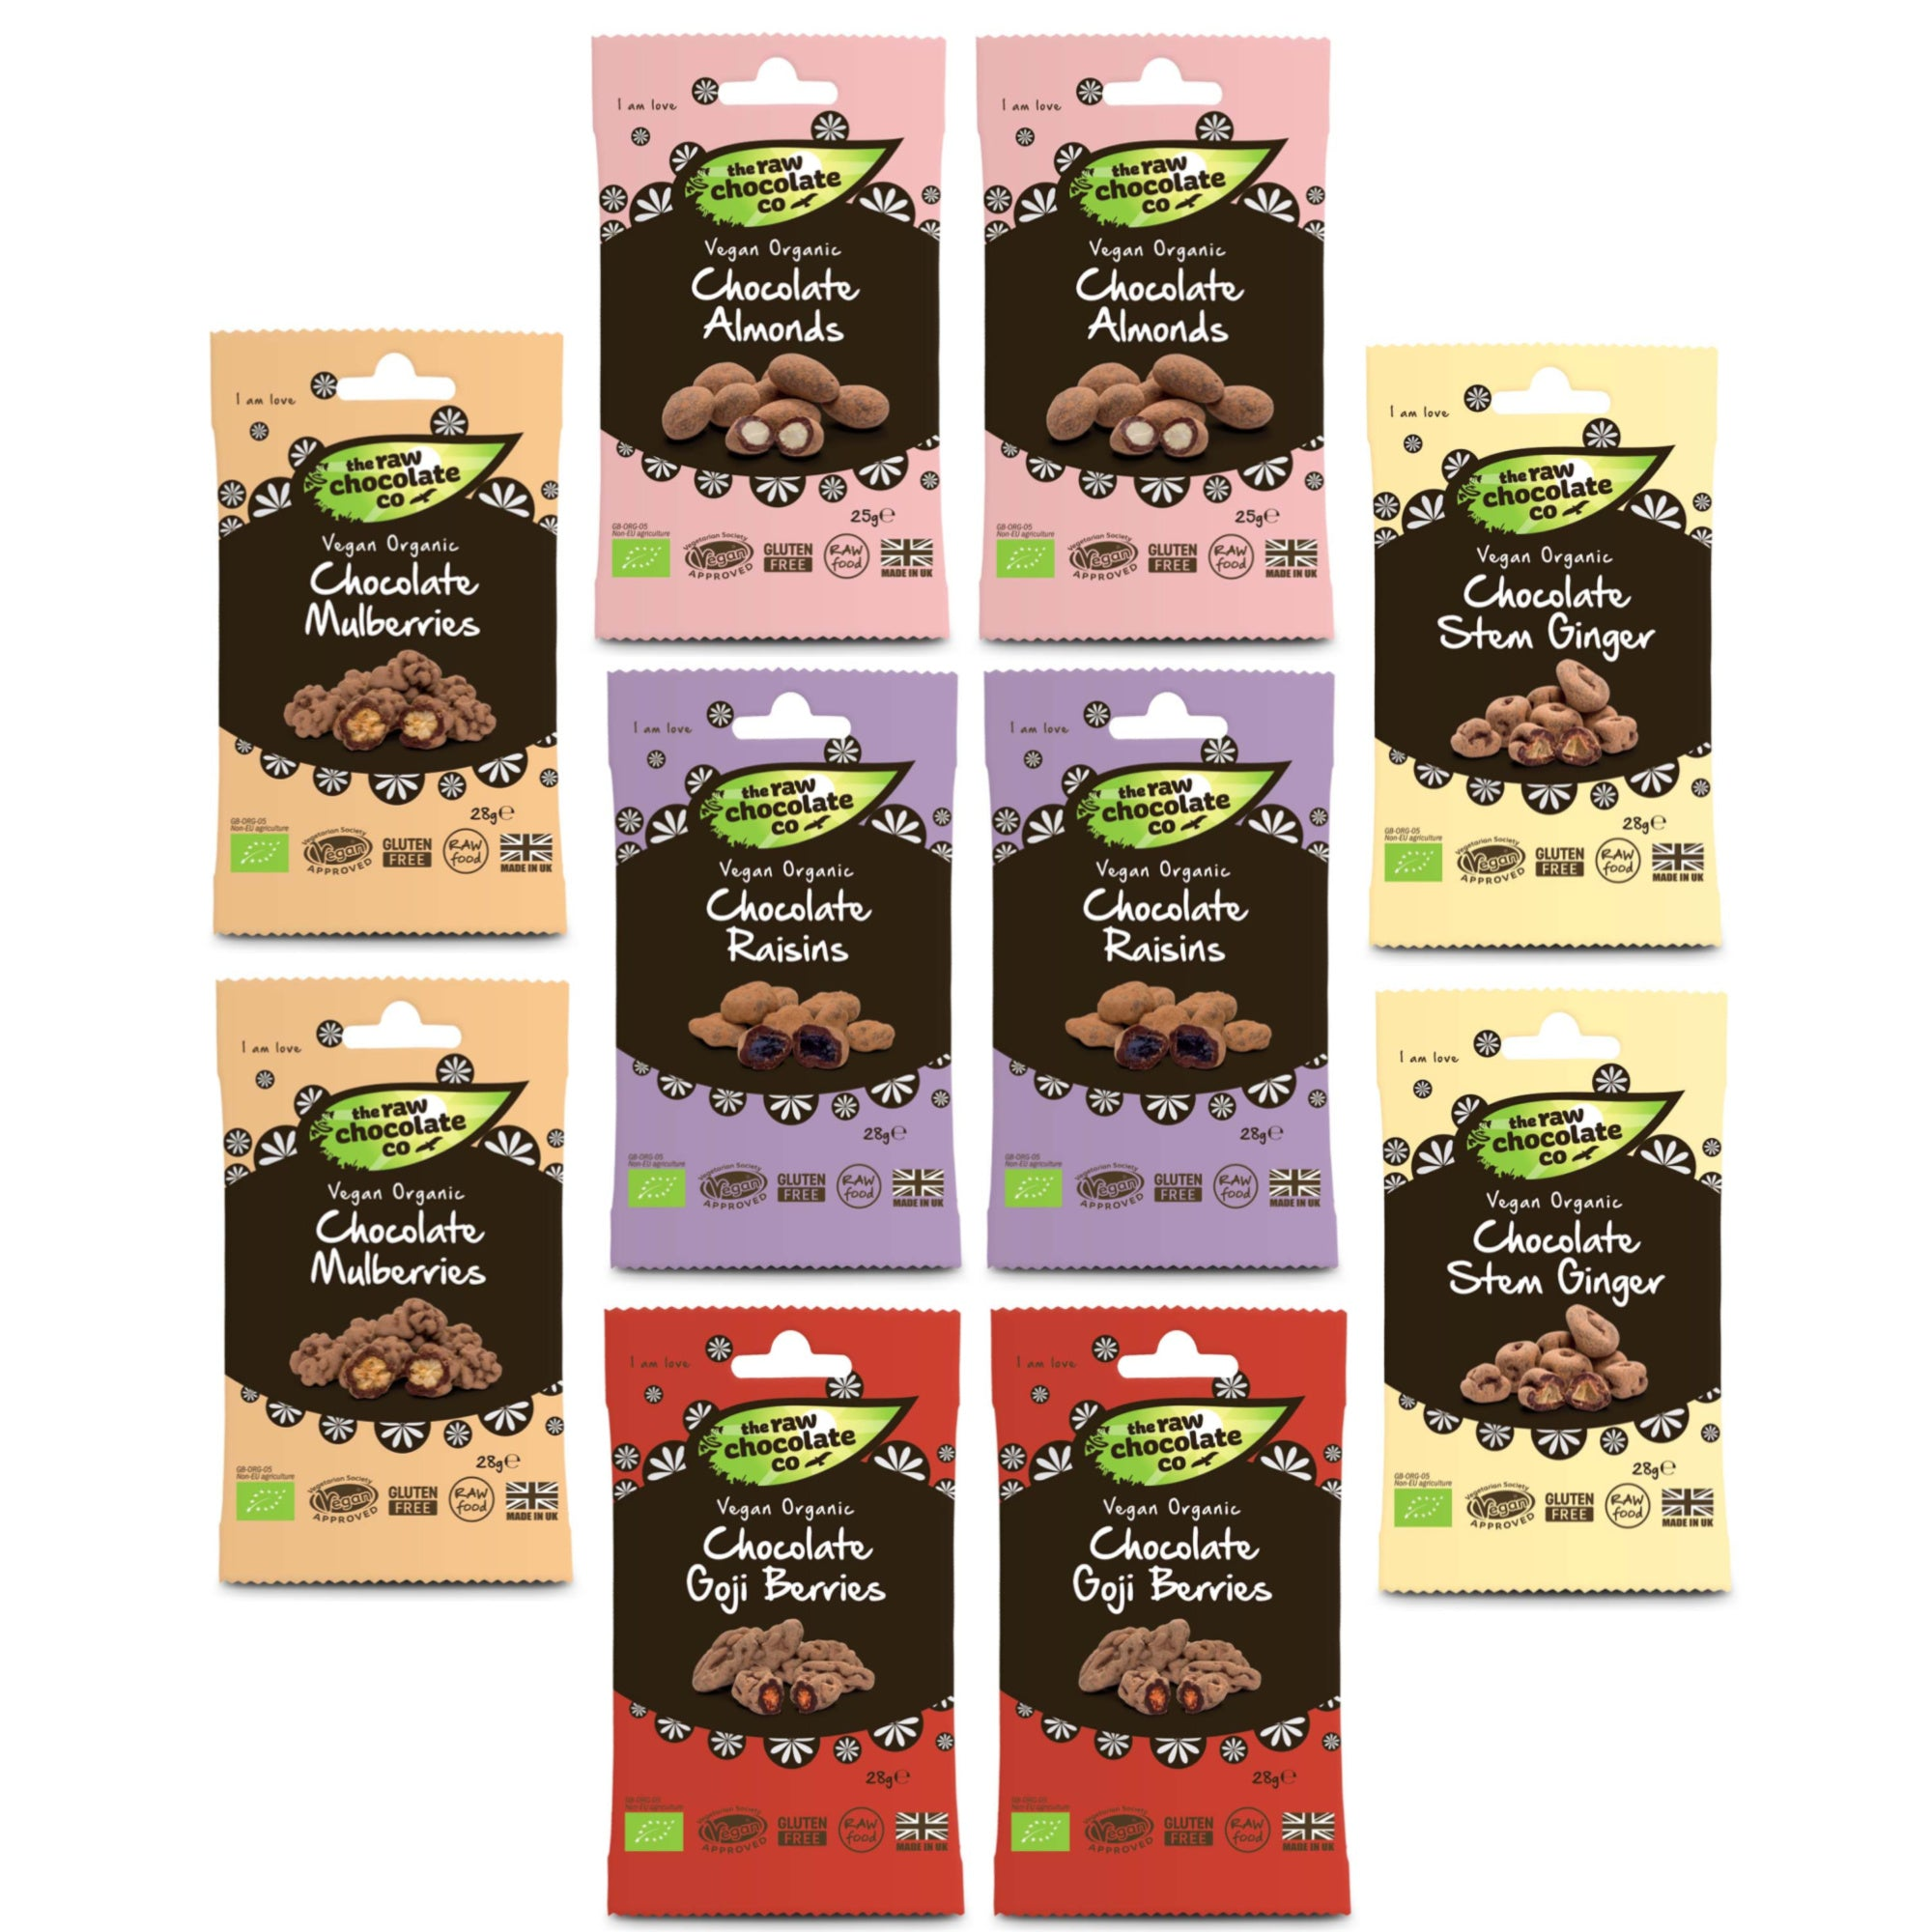 Mixed Snack Pack Bundle (15% off RRP) - The Raw Chocolate Company